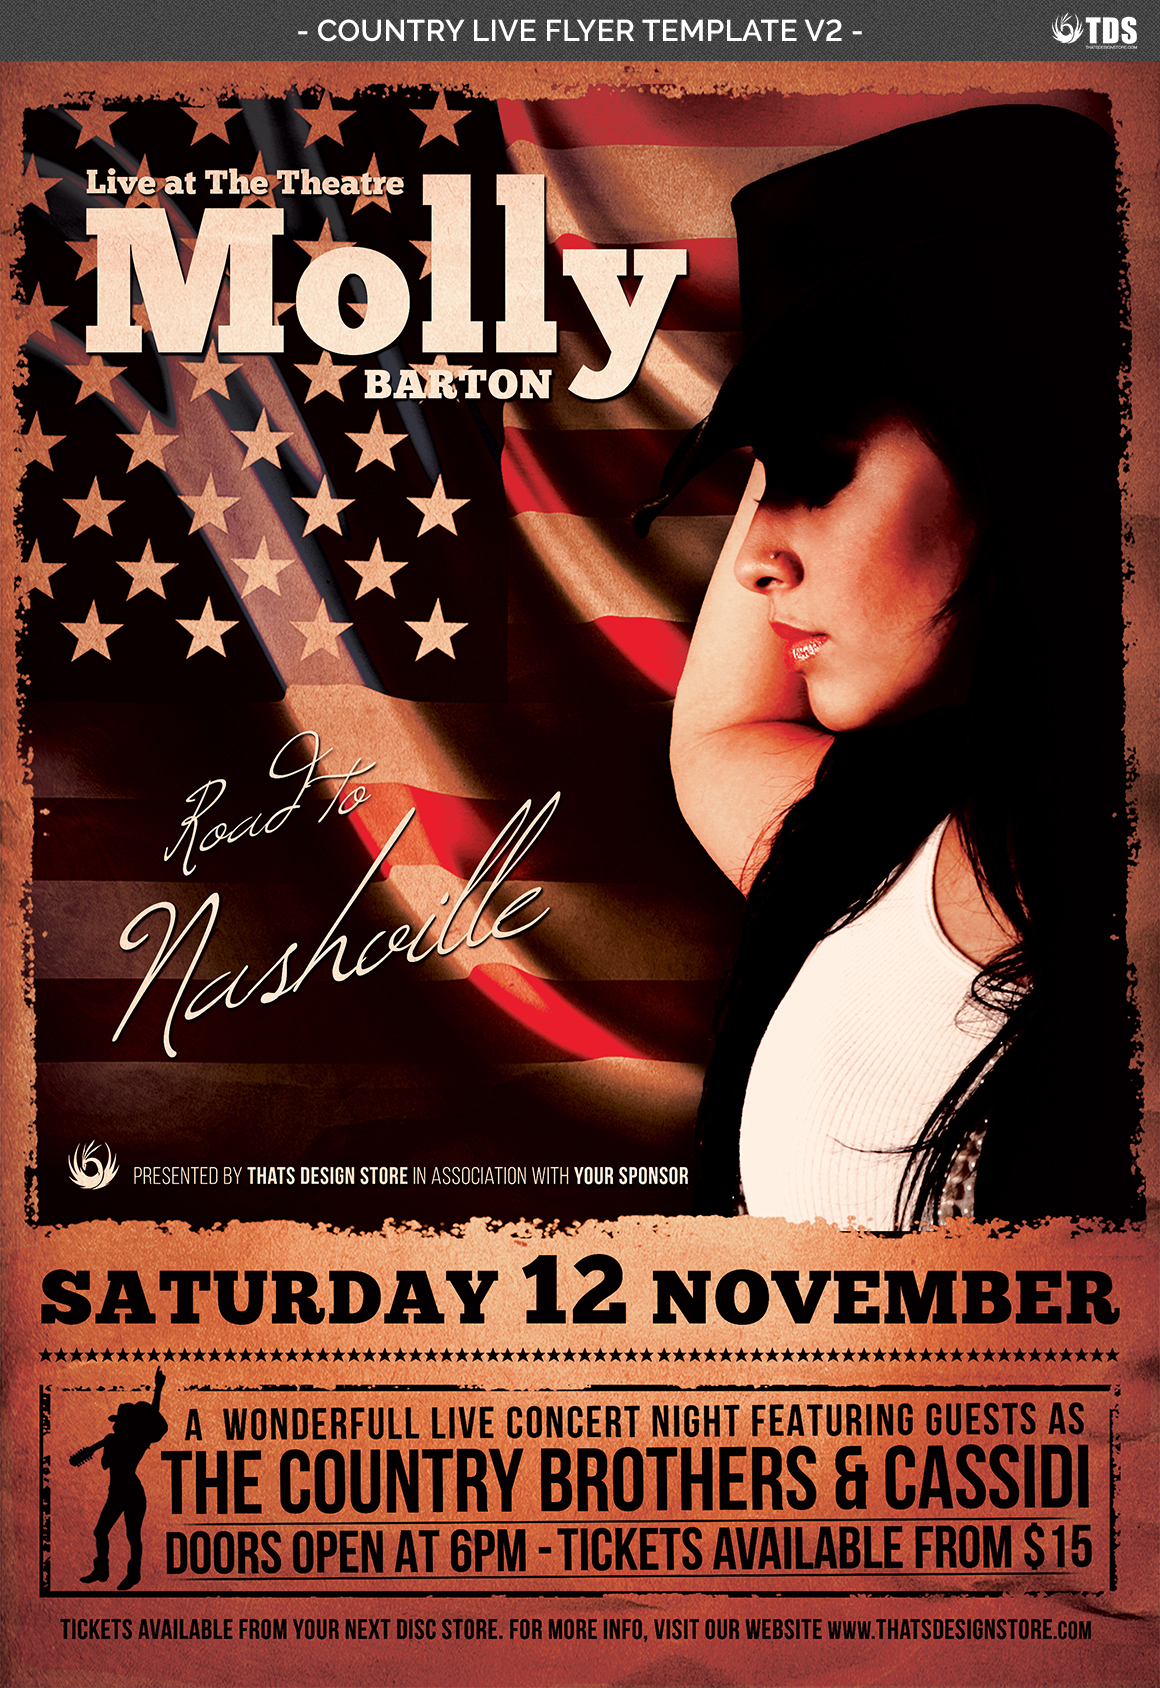 Country Live Flyer Template V2 example image 4